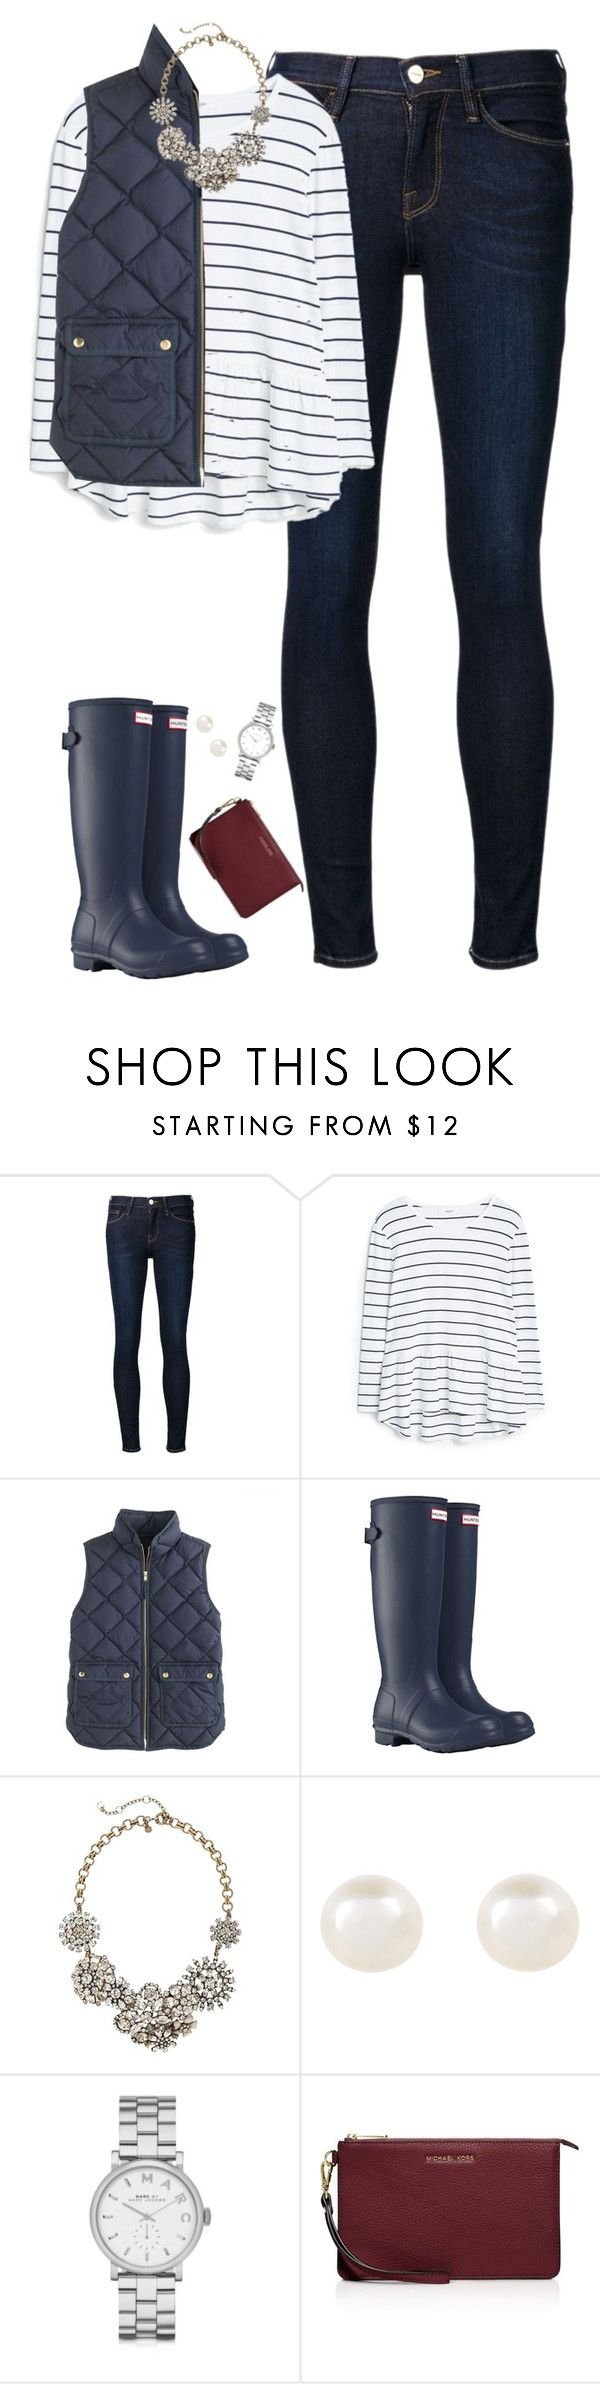 """Navy stripes, vest & hunter boots"" by steffiestaffie ❤ liked on Polyvore featuring Frame Denim, MANGO, J.Crew, Hunter, Accessorize, Marc by Marc Jacobs and MICHAEL Michael Kors"